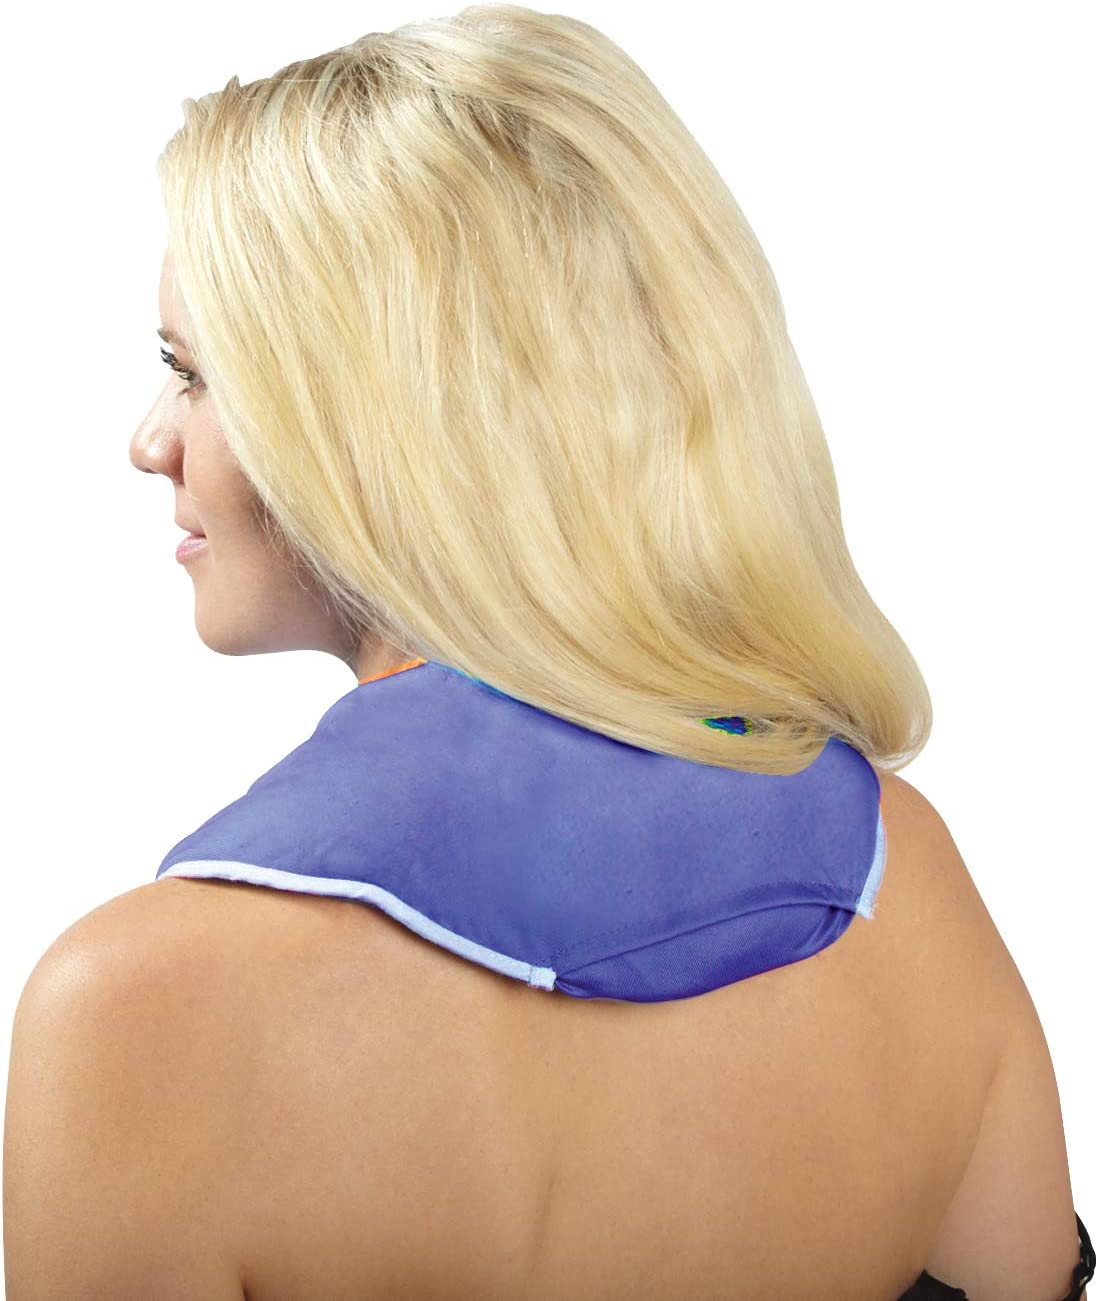 ThermiPaq Microwave Heating Pad for Neck and Shoulders - Reusable Heated Neck Wrap for Neck Pain and Shoulder Pain